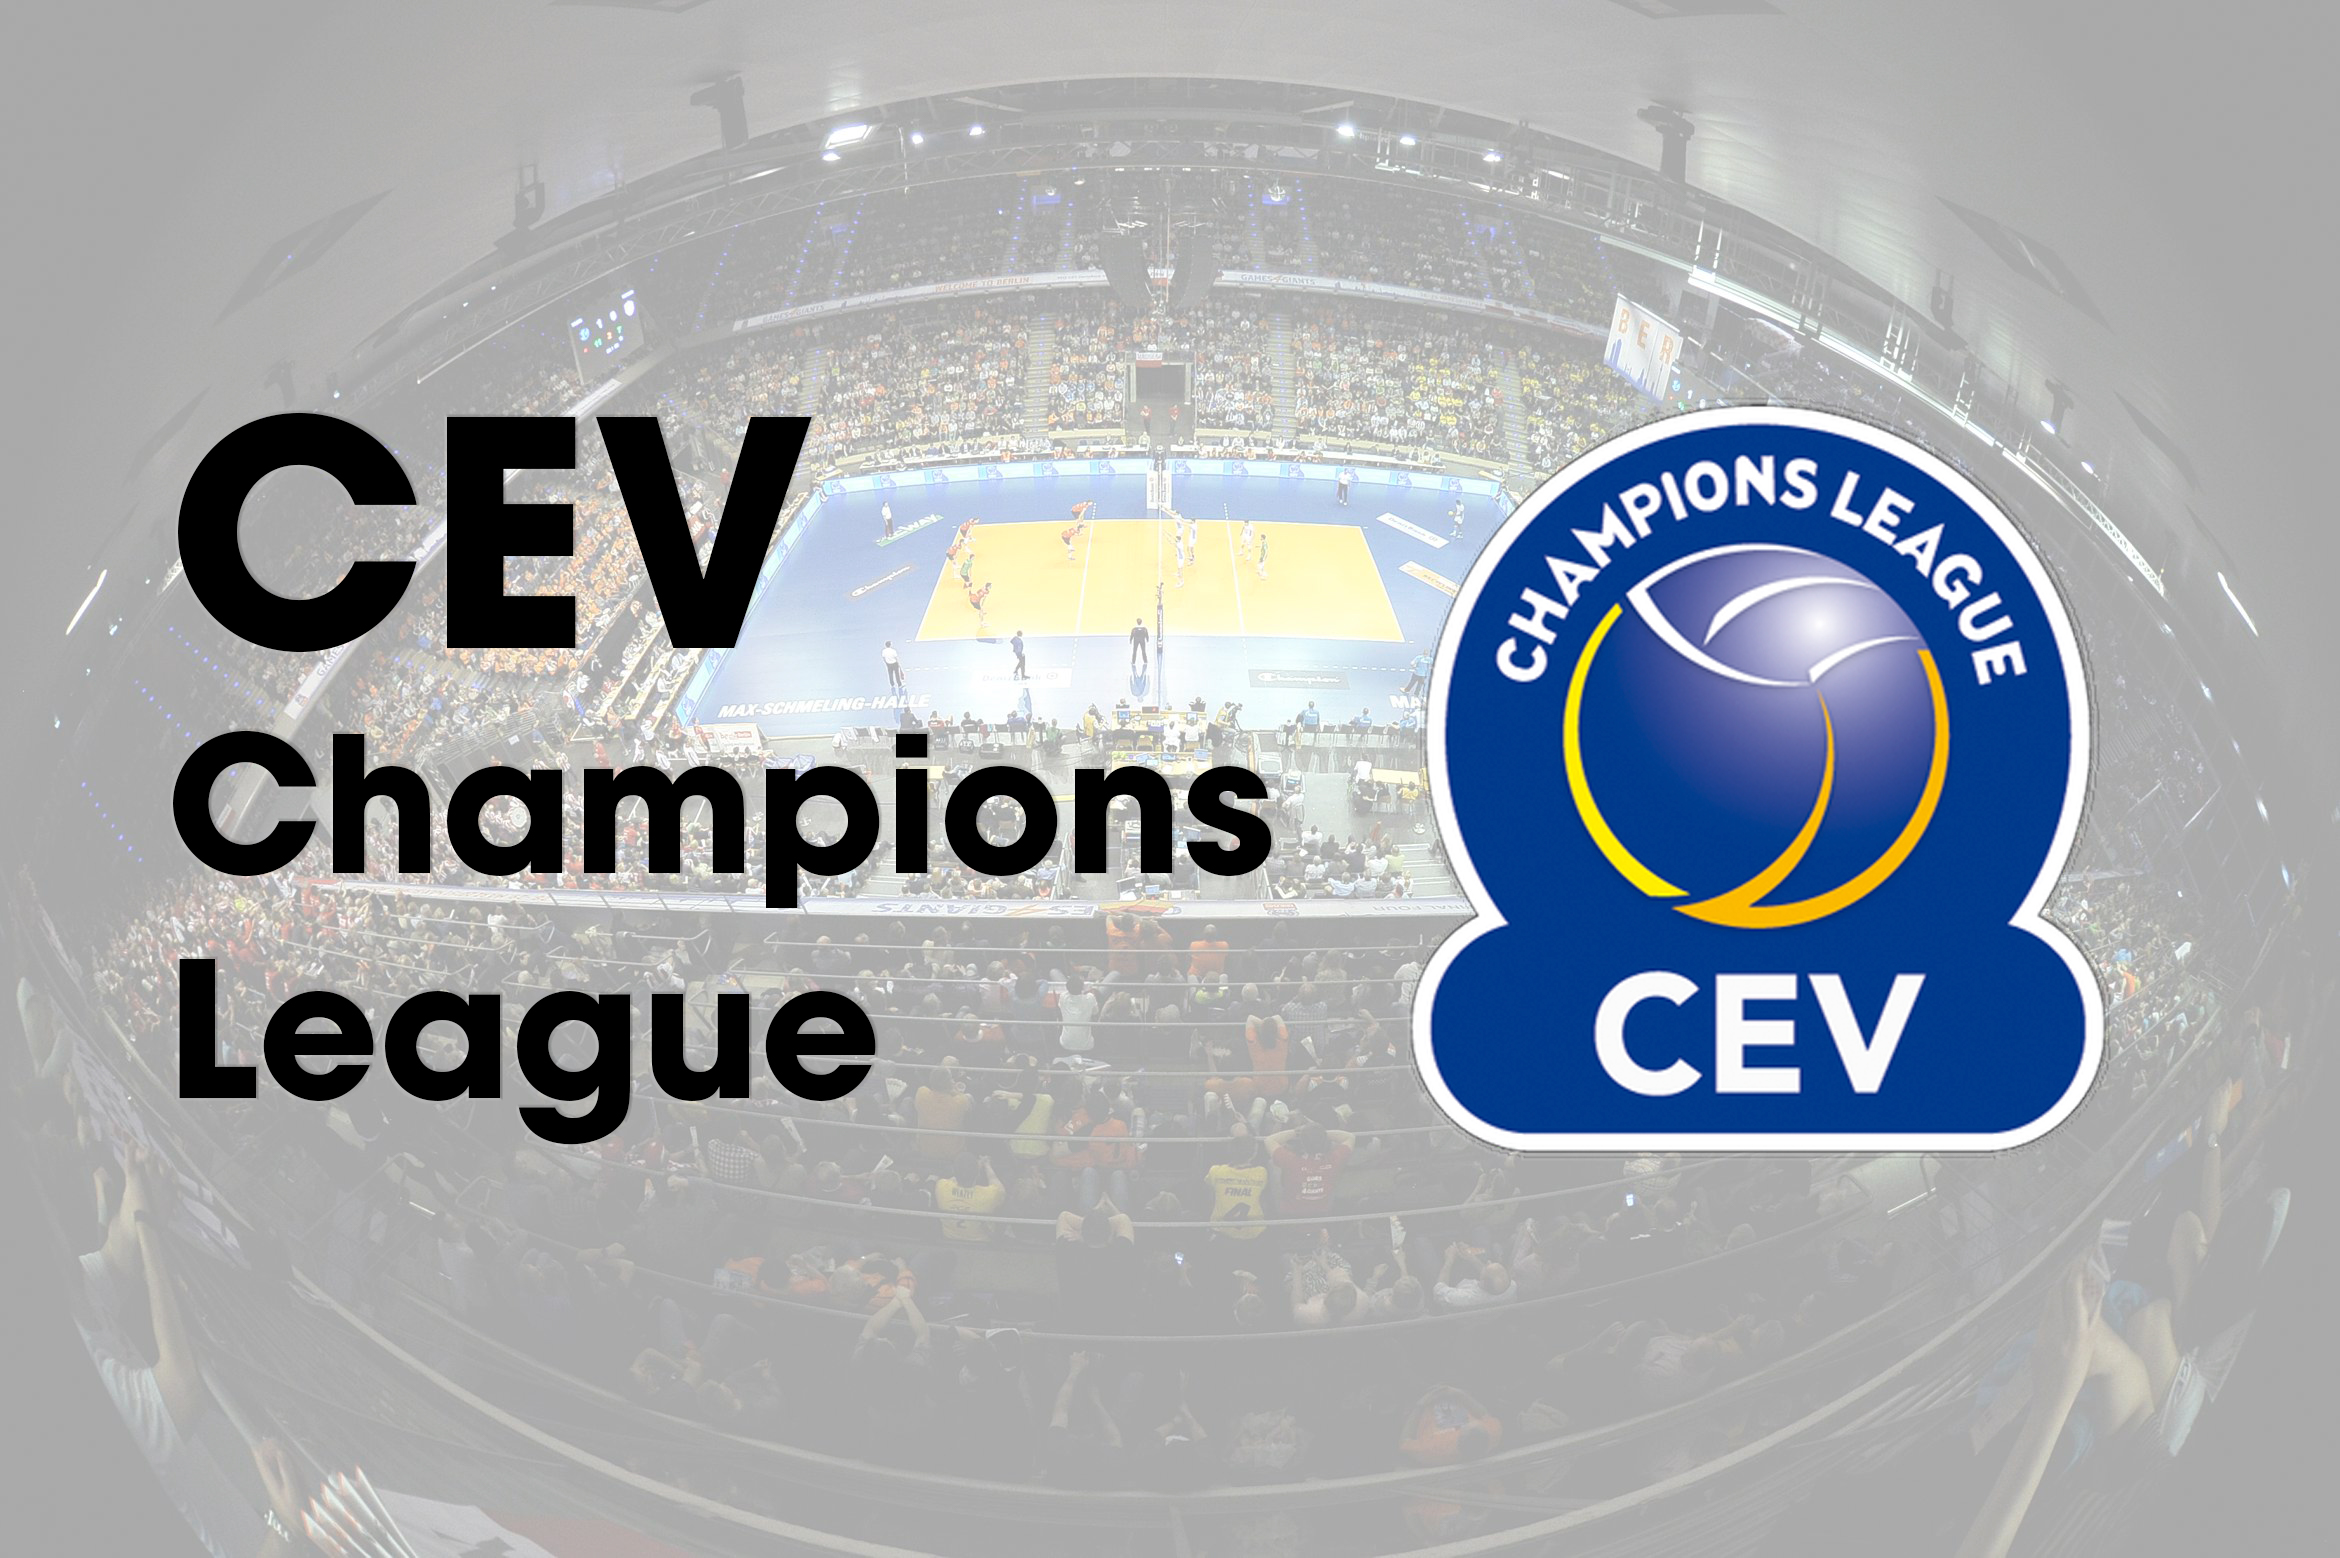 CEV_Champions League_Web.jpg